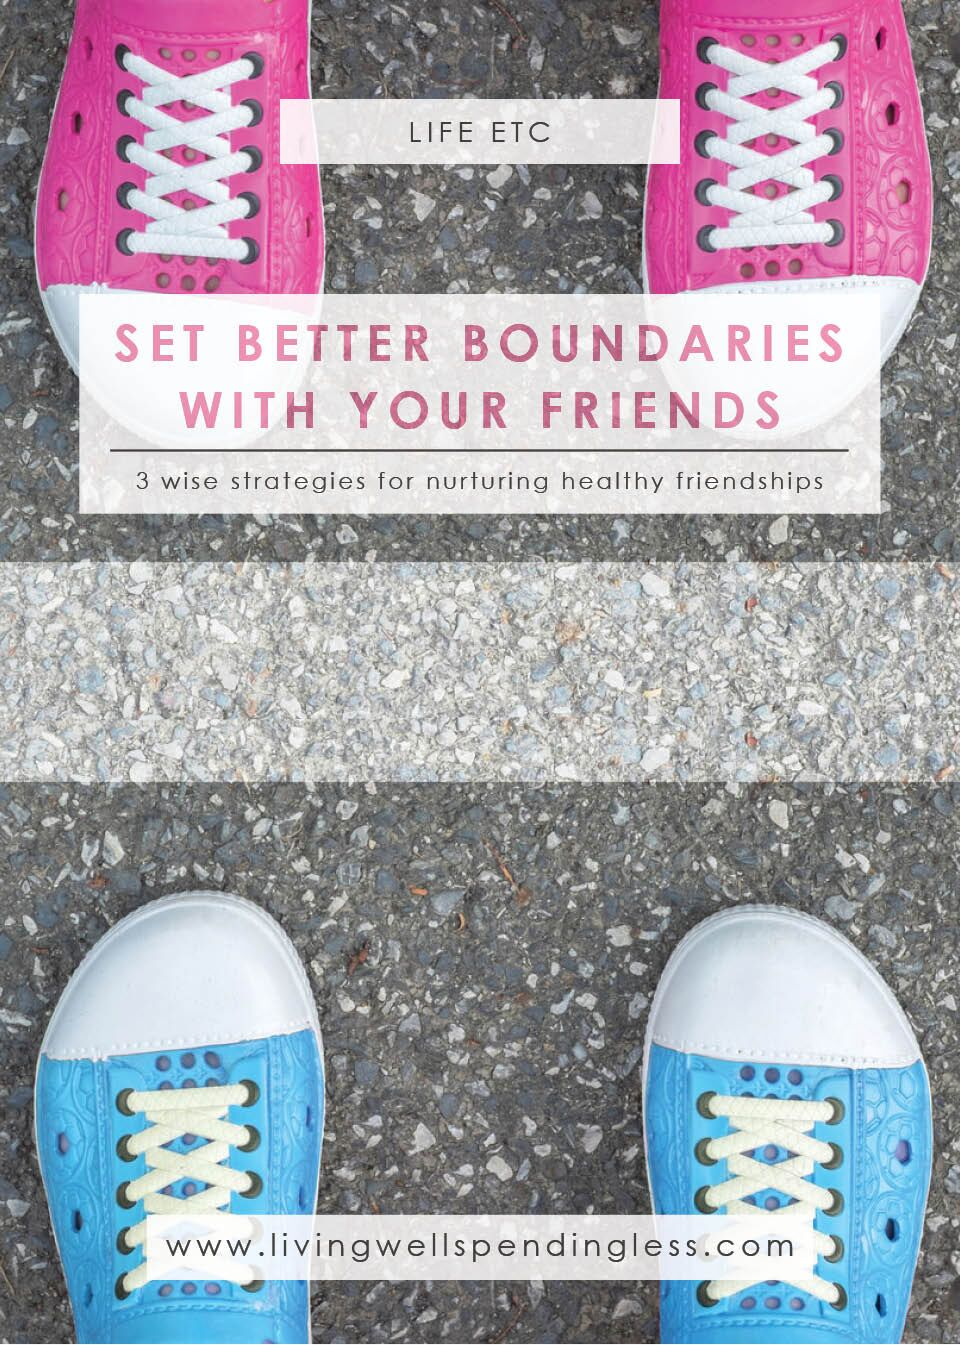 How to Set Better Boundaries with Your Friends | Friendship Advice | Life and Relationships